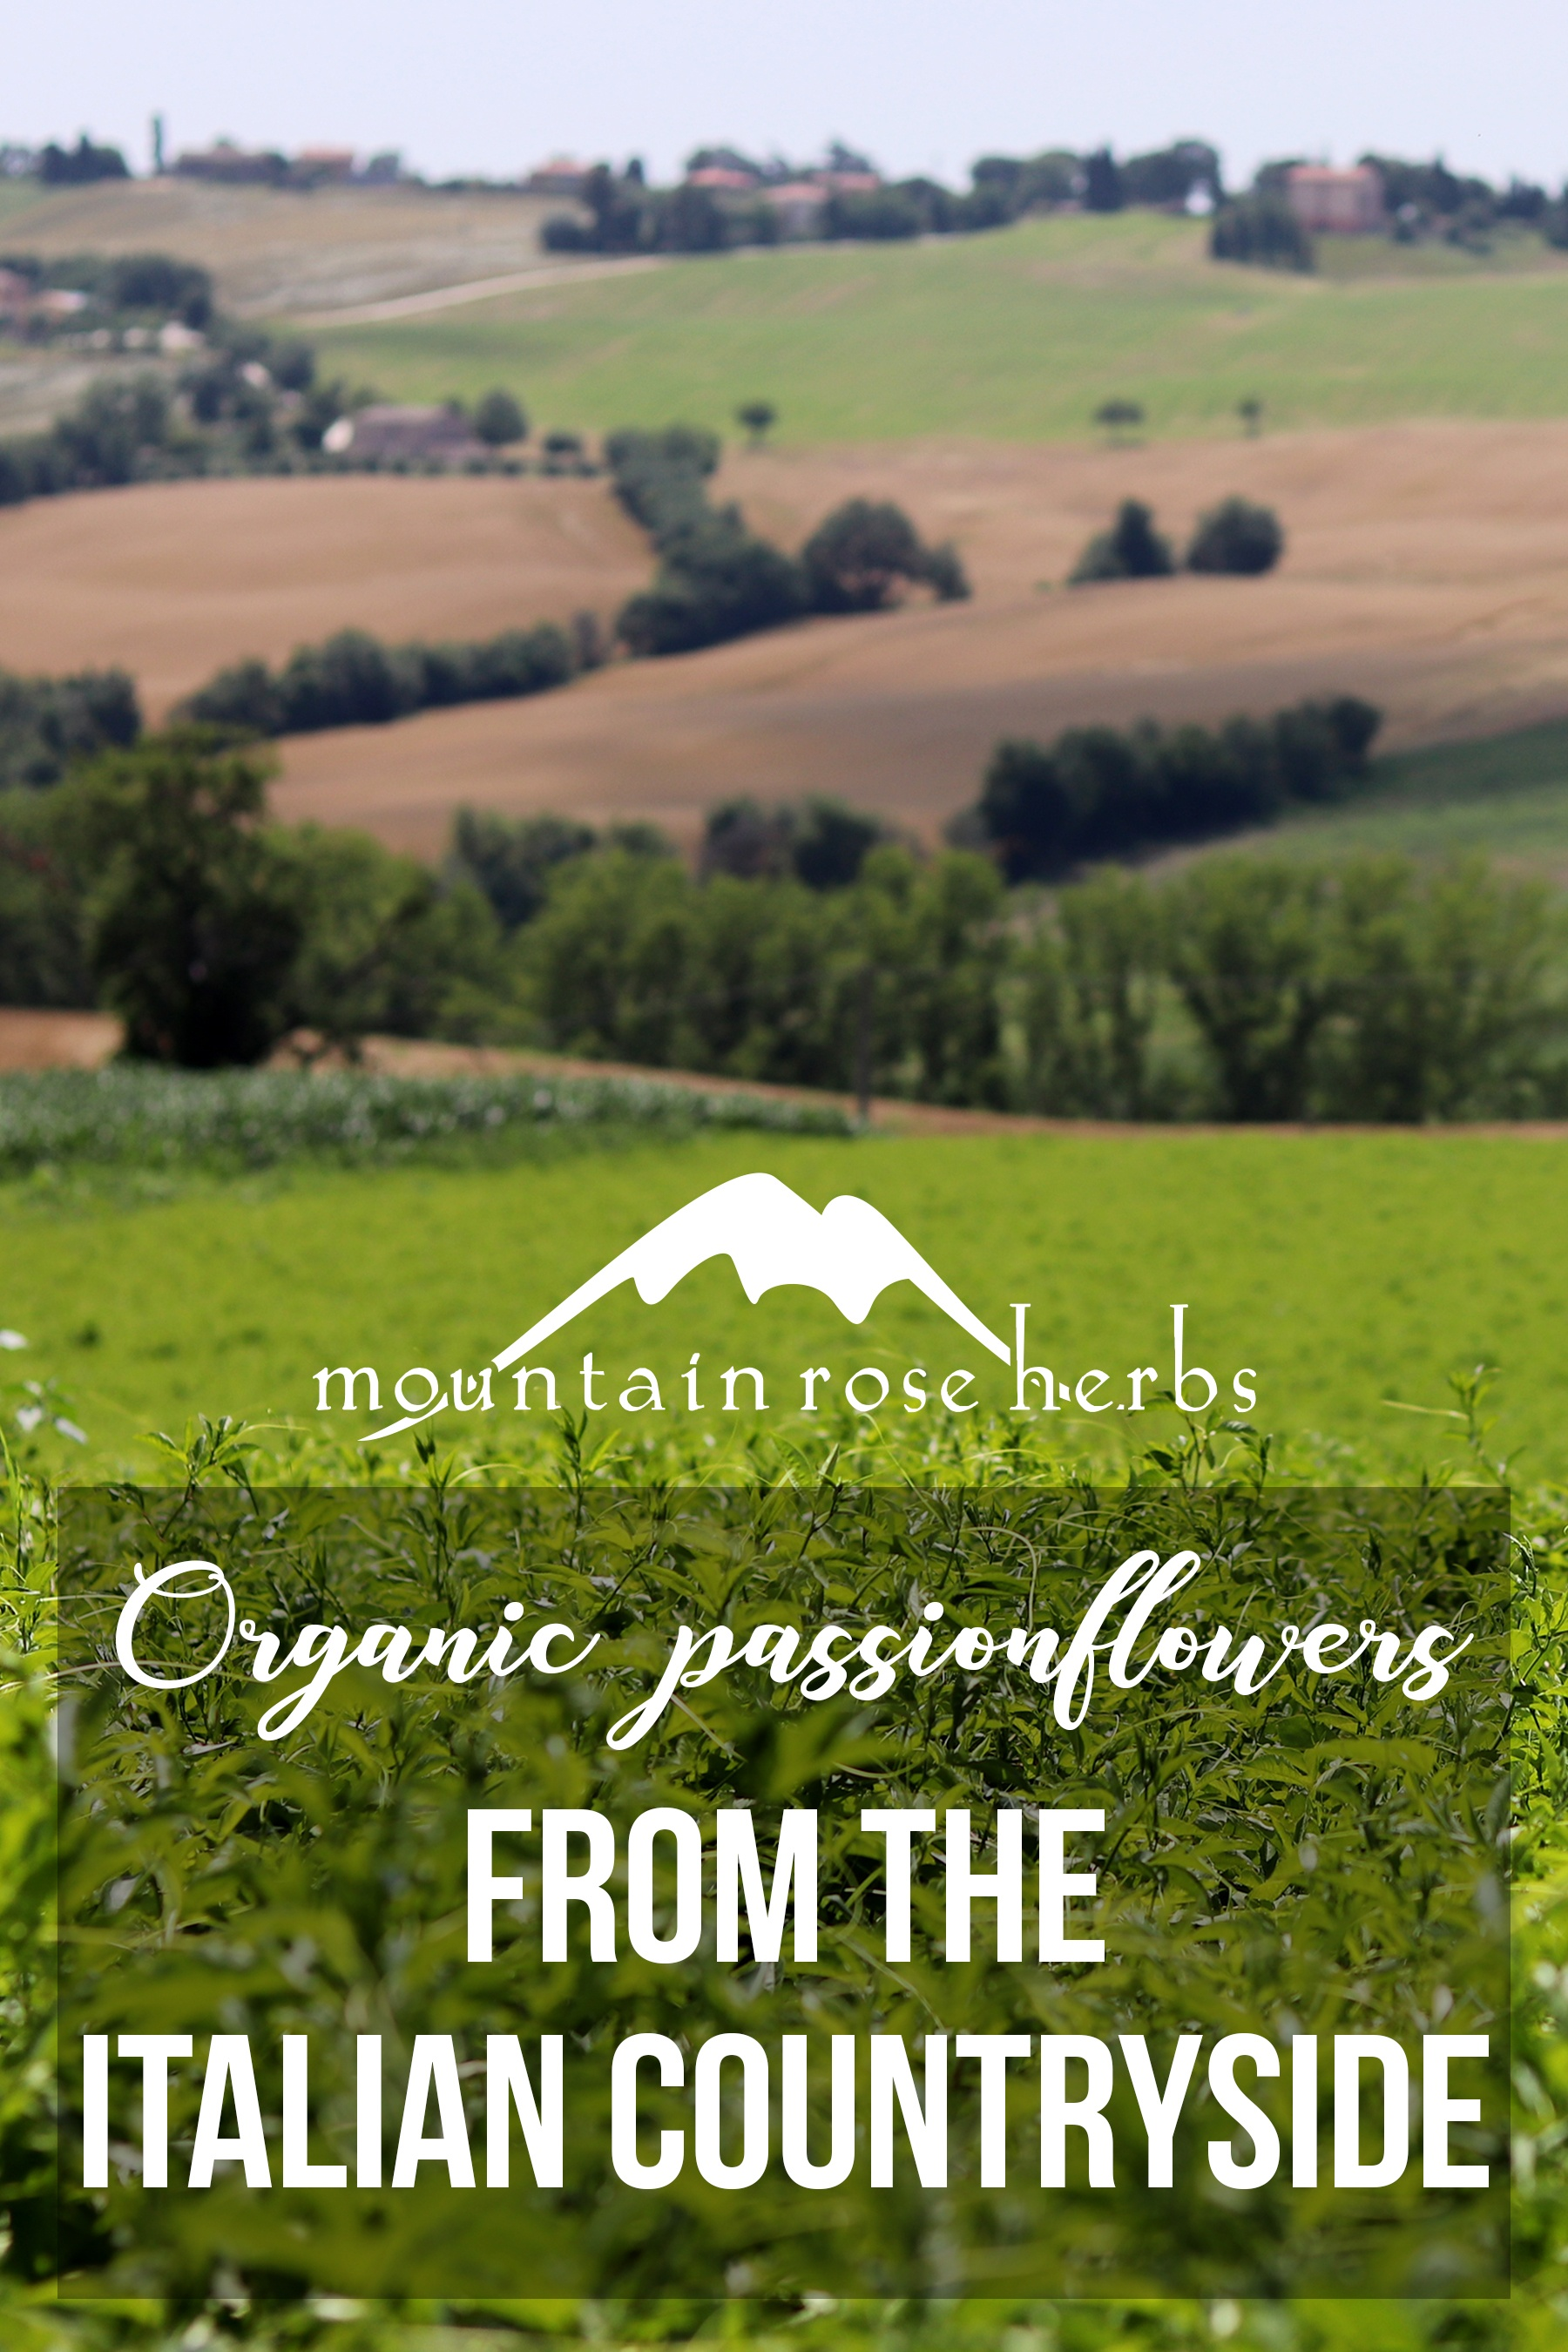 Pin for Organic Passionflowers from the Italian countryside